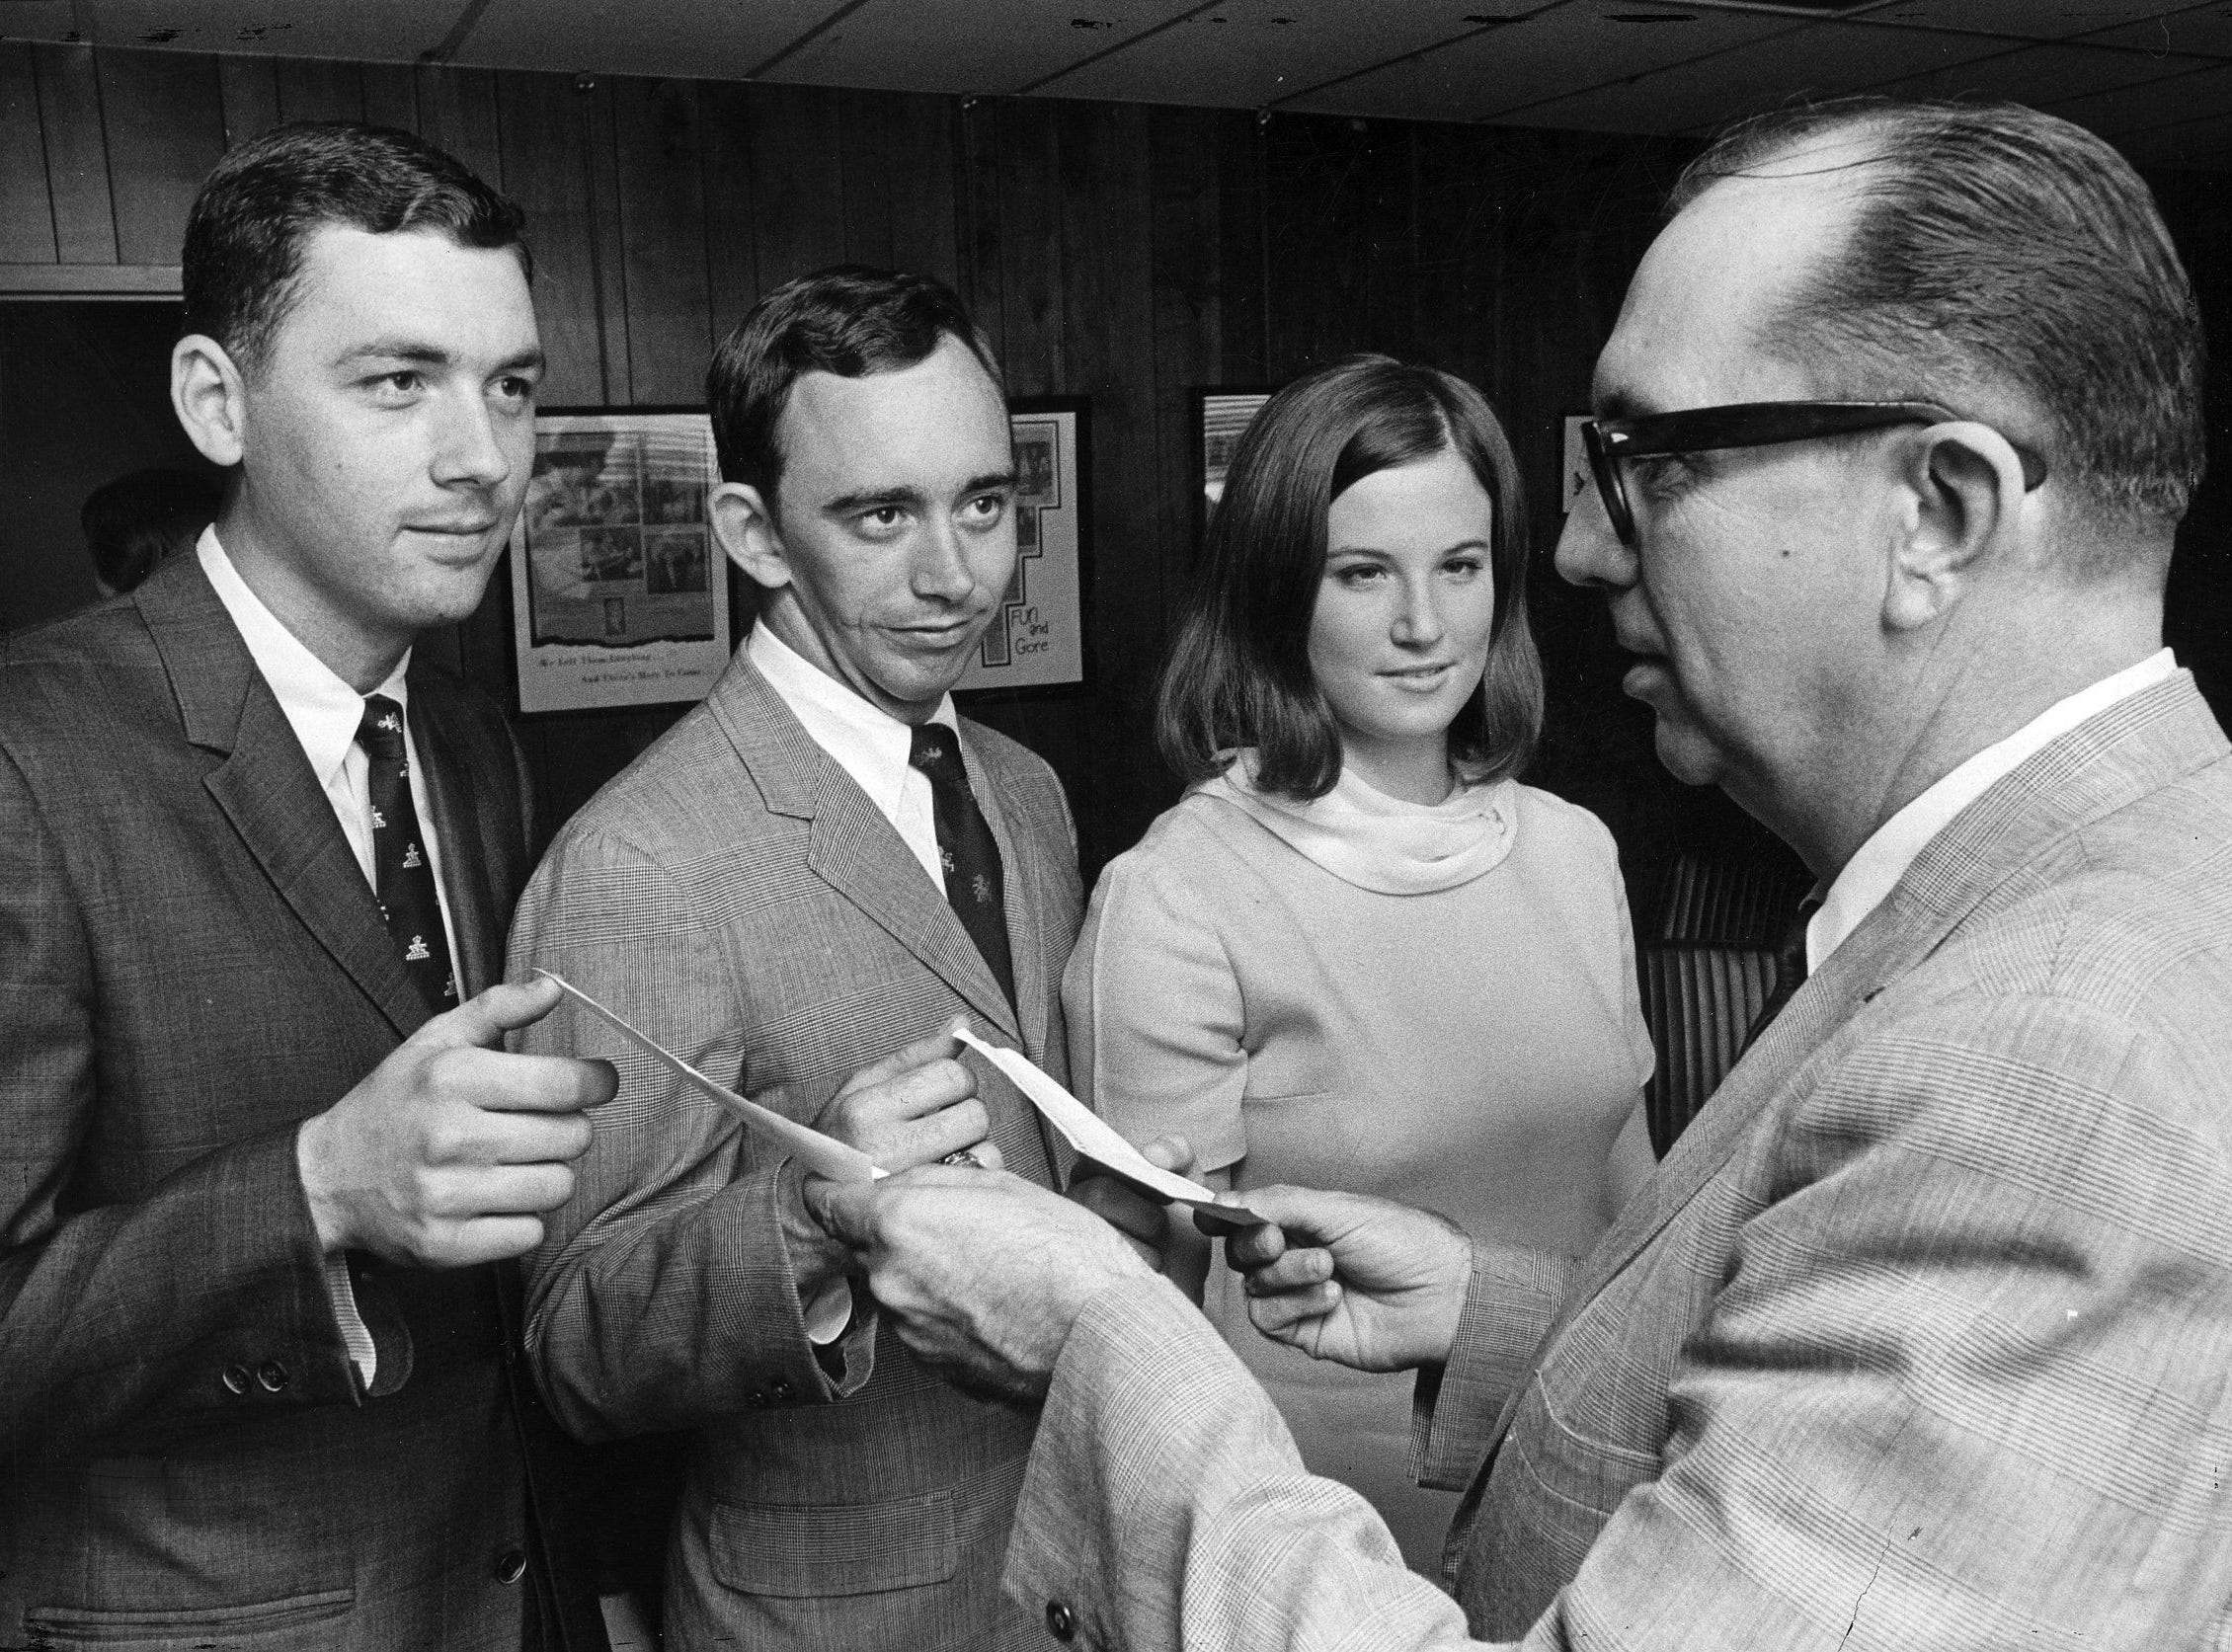 William B. Street (Right), scholarship chairman of the Memphis Press Club, presents checks to 3 of the 22 winners of awards and scholarships announced at the Gridiron Show at Holiday Hall on 29 May 1968. They are (From Left) Johnny Johnson of Natchez, MS. and Charles Overby of Jackson, MS, students at the University of Mississippi, who both won awards for journalistic excellence, and Miss Janna Pepper of Jackson, MS, who won a scholarship to Mississippi State University. The students selected for the honors attend seven colleges and universities in the Mid-South area. Last year's show provided $3,000 for scholarship awards.